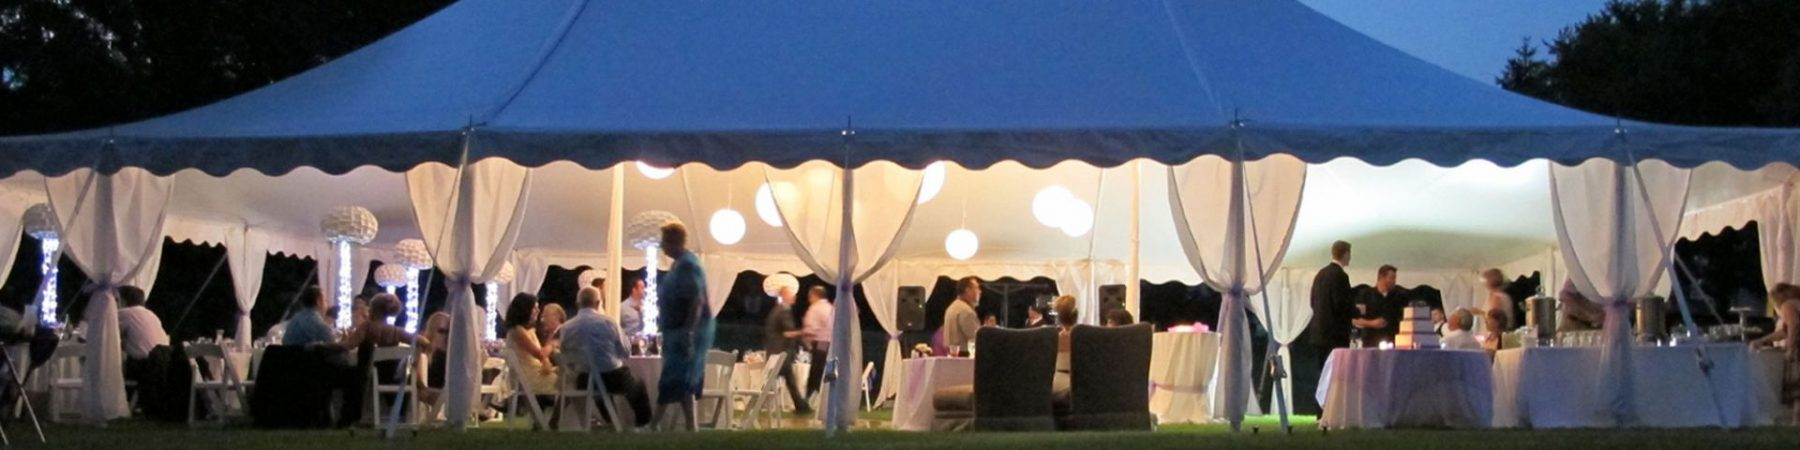 Tents to rent for big events